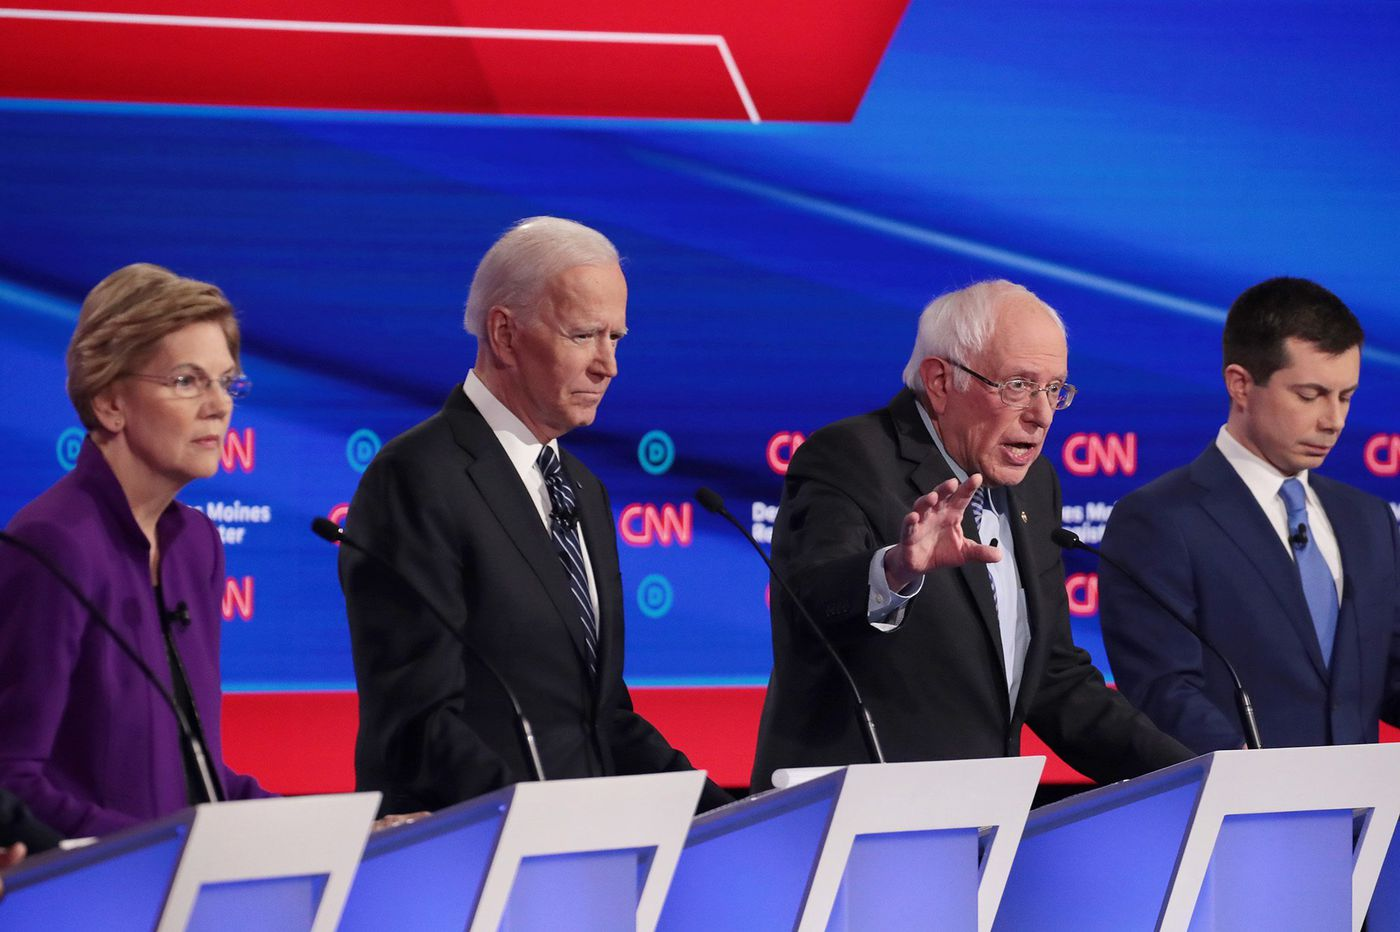 Democratic candidates' proposed wealth, income taxes: who has the lowest and highest tax plan?